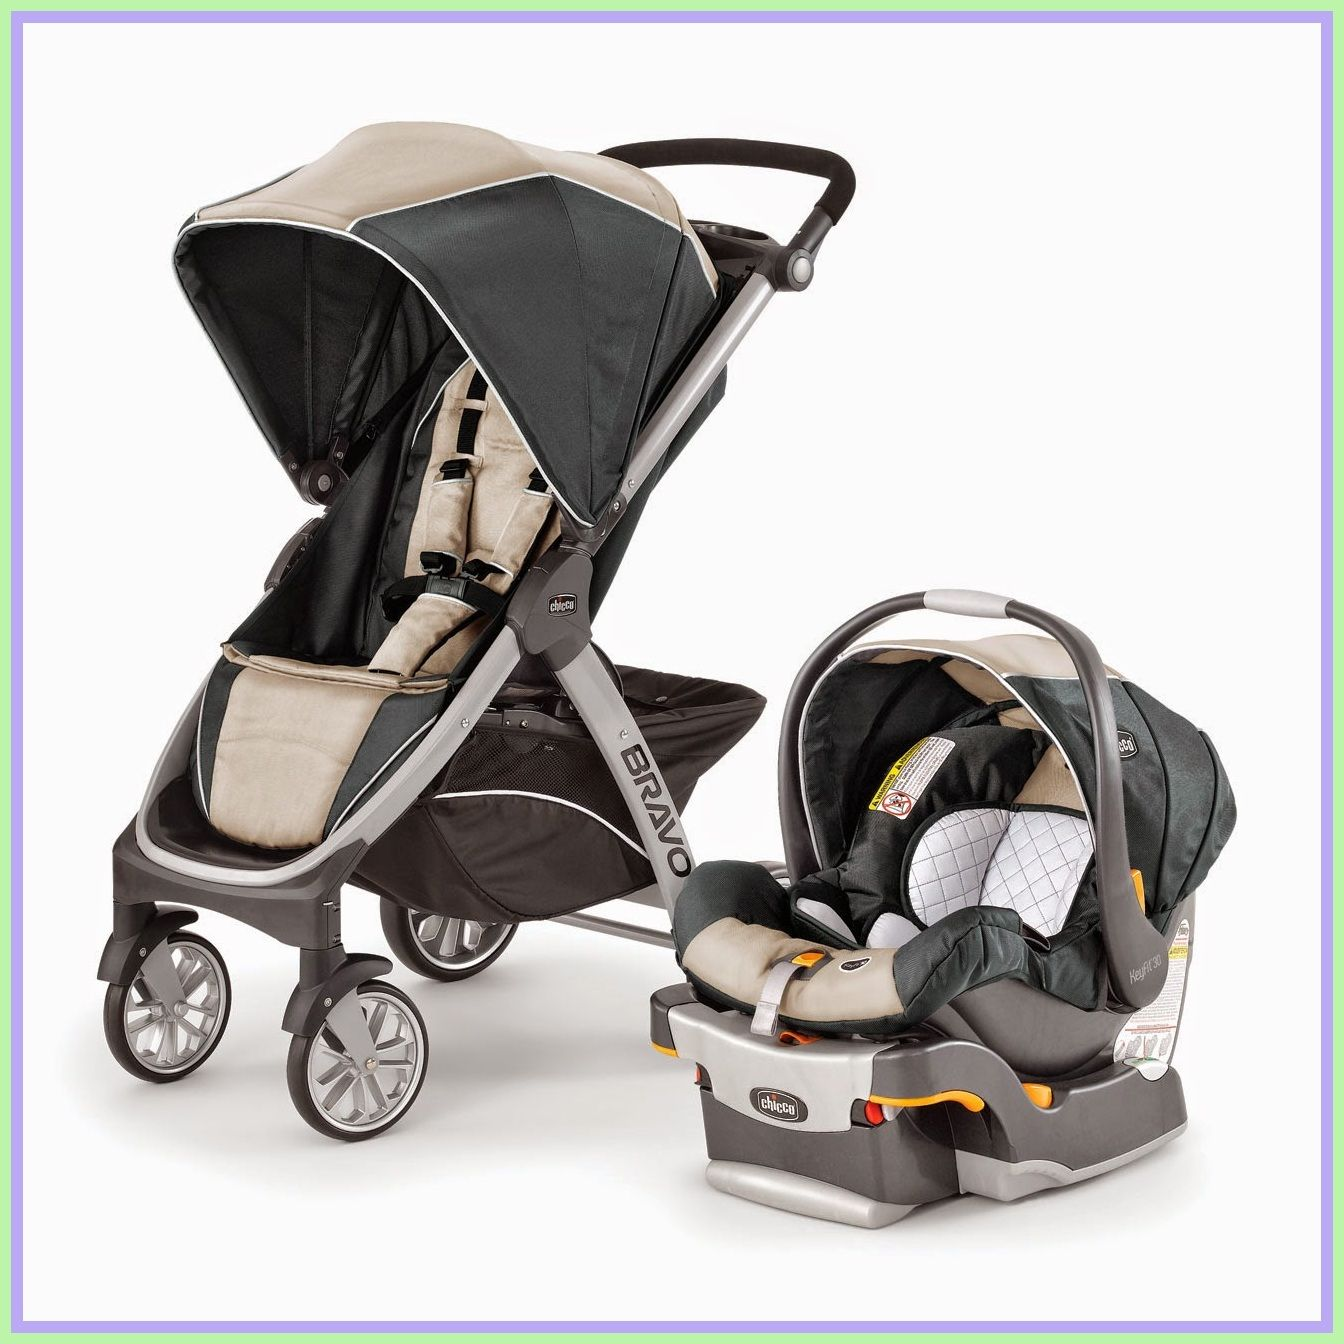 Chicco Lightweight Stroller Instructions - Stroller